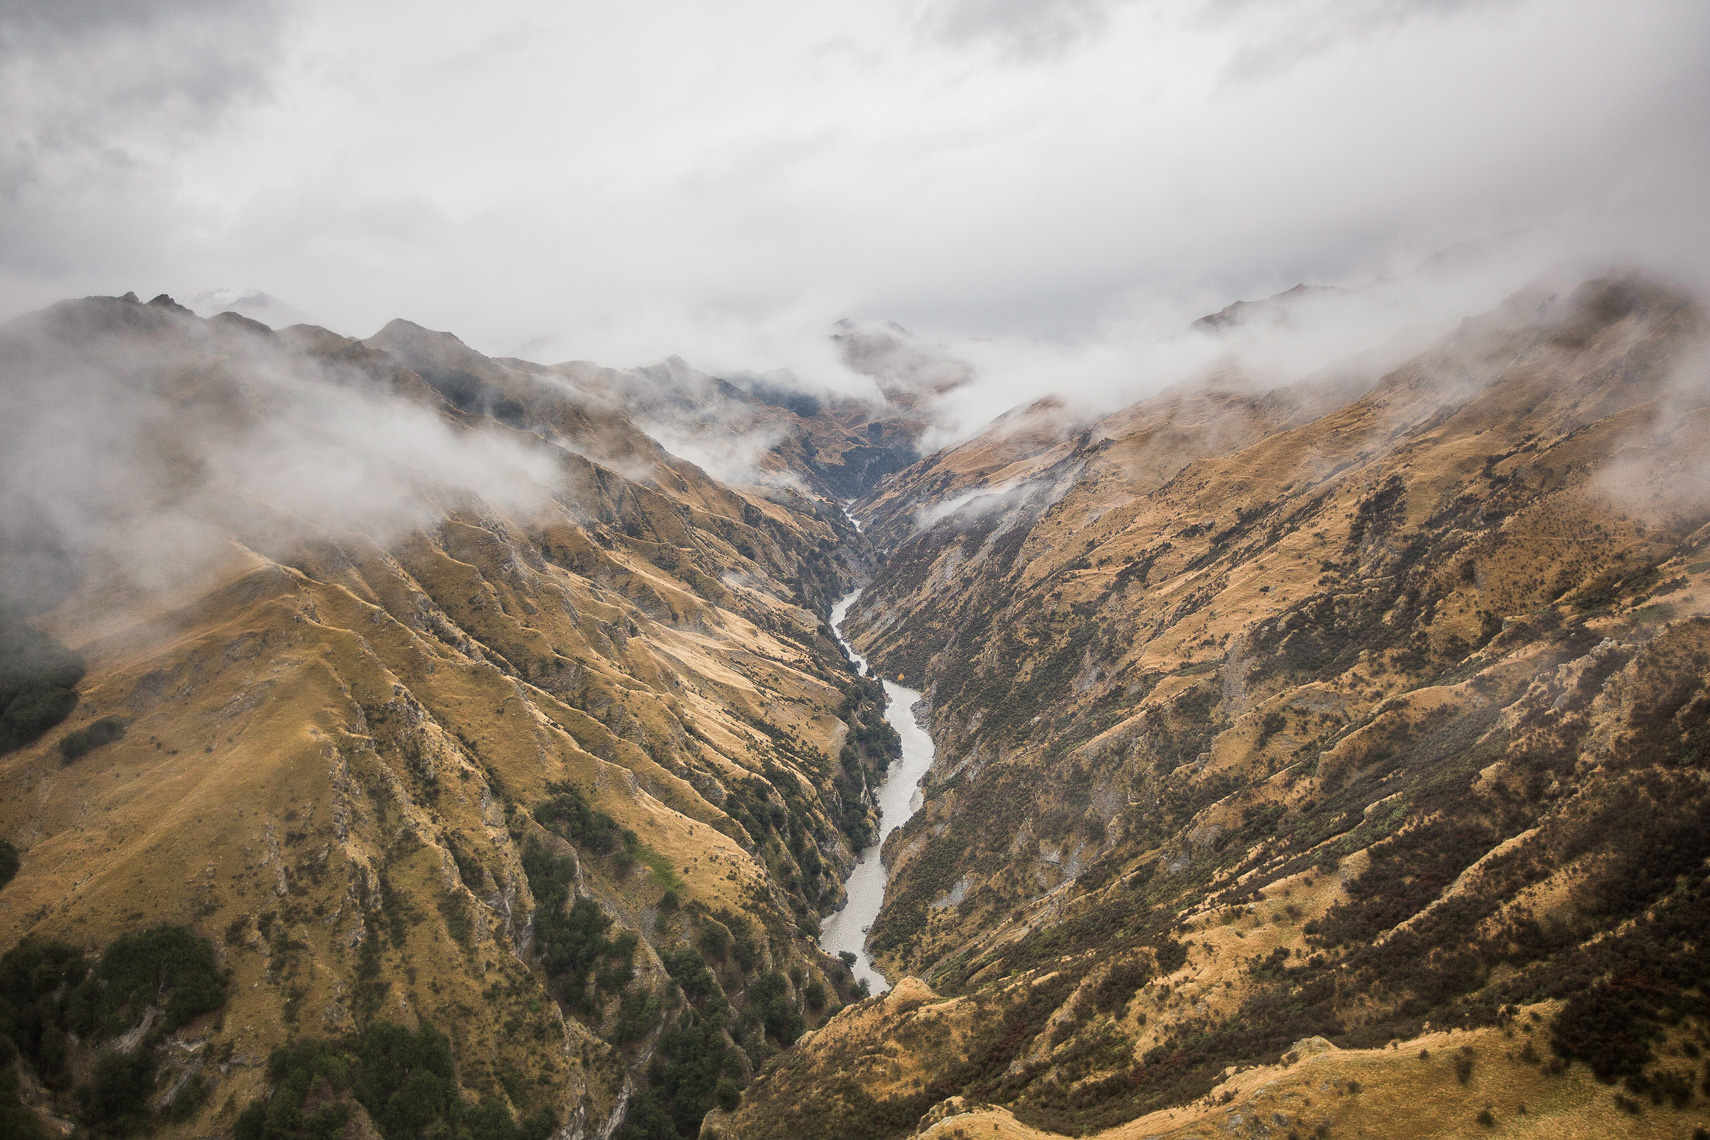 Clouds and rain in Skippers canyon from the air by Paul Green Photographer